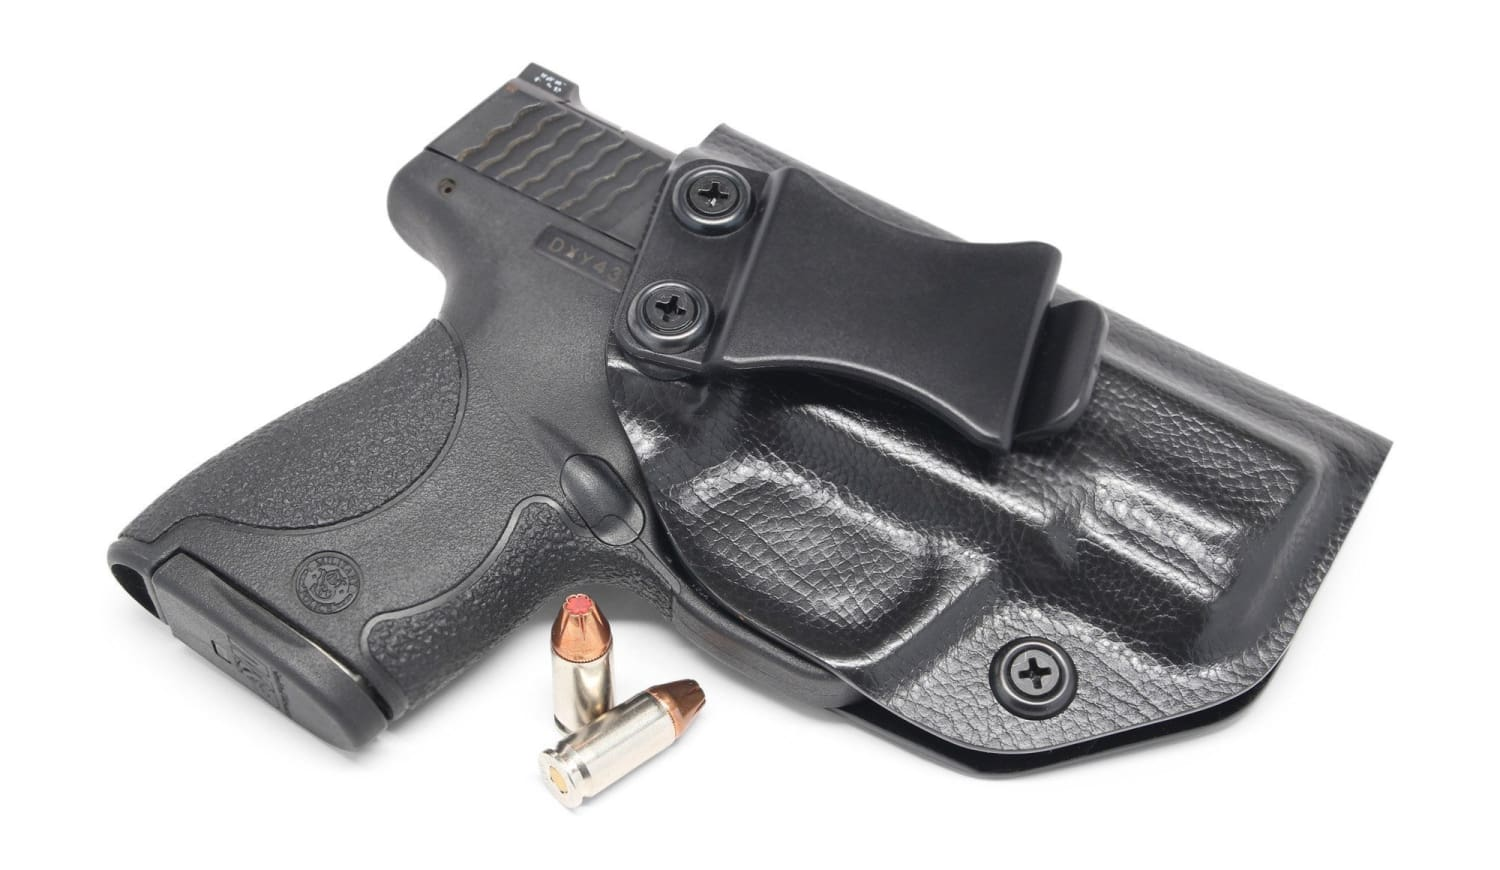 Introducing the New Raptor Black Finish for our IWB KYDEX Holsters